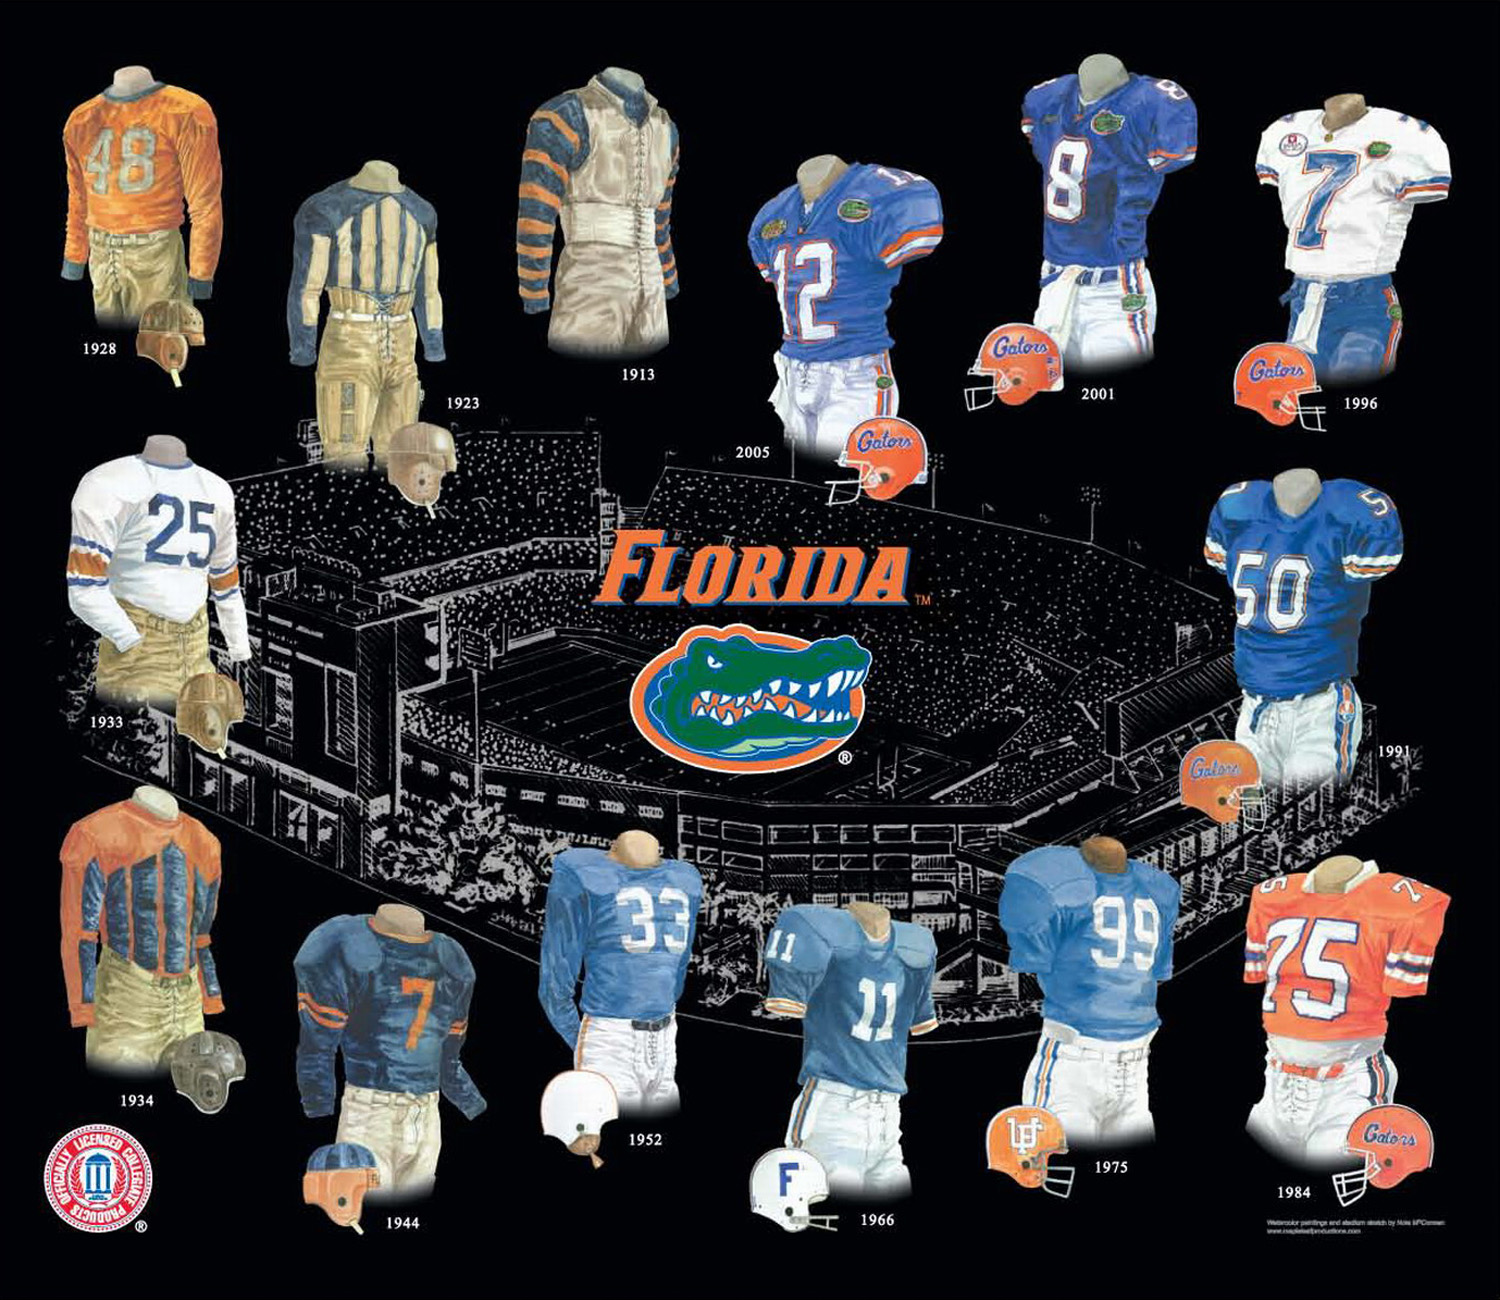 University Of Florida Gators Football Uniform And Team